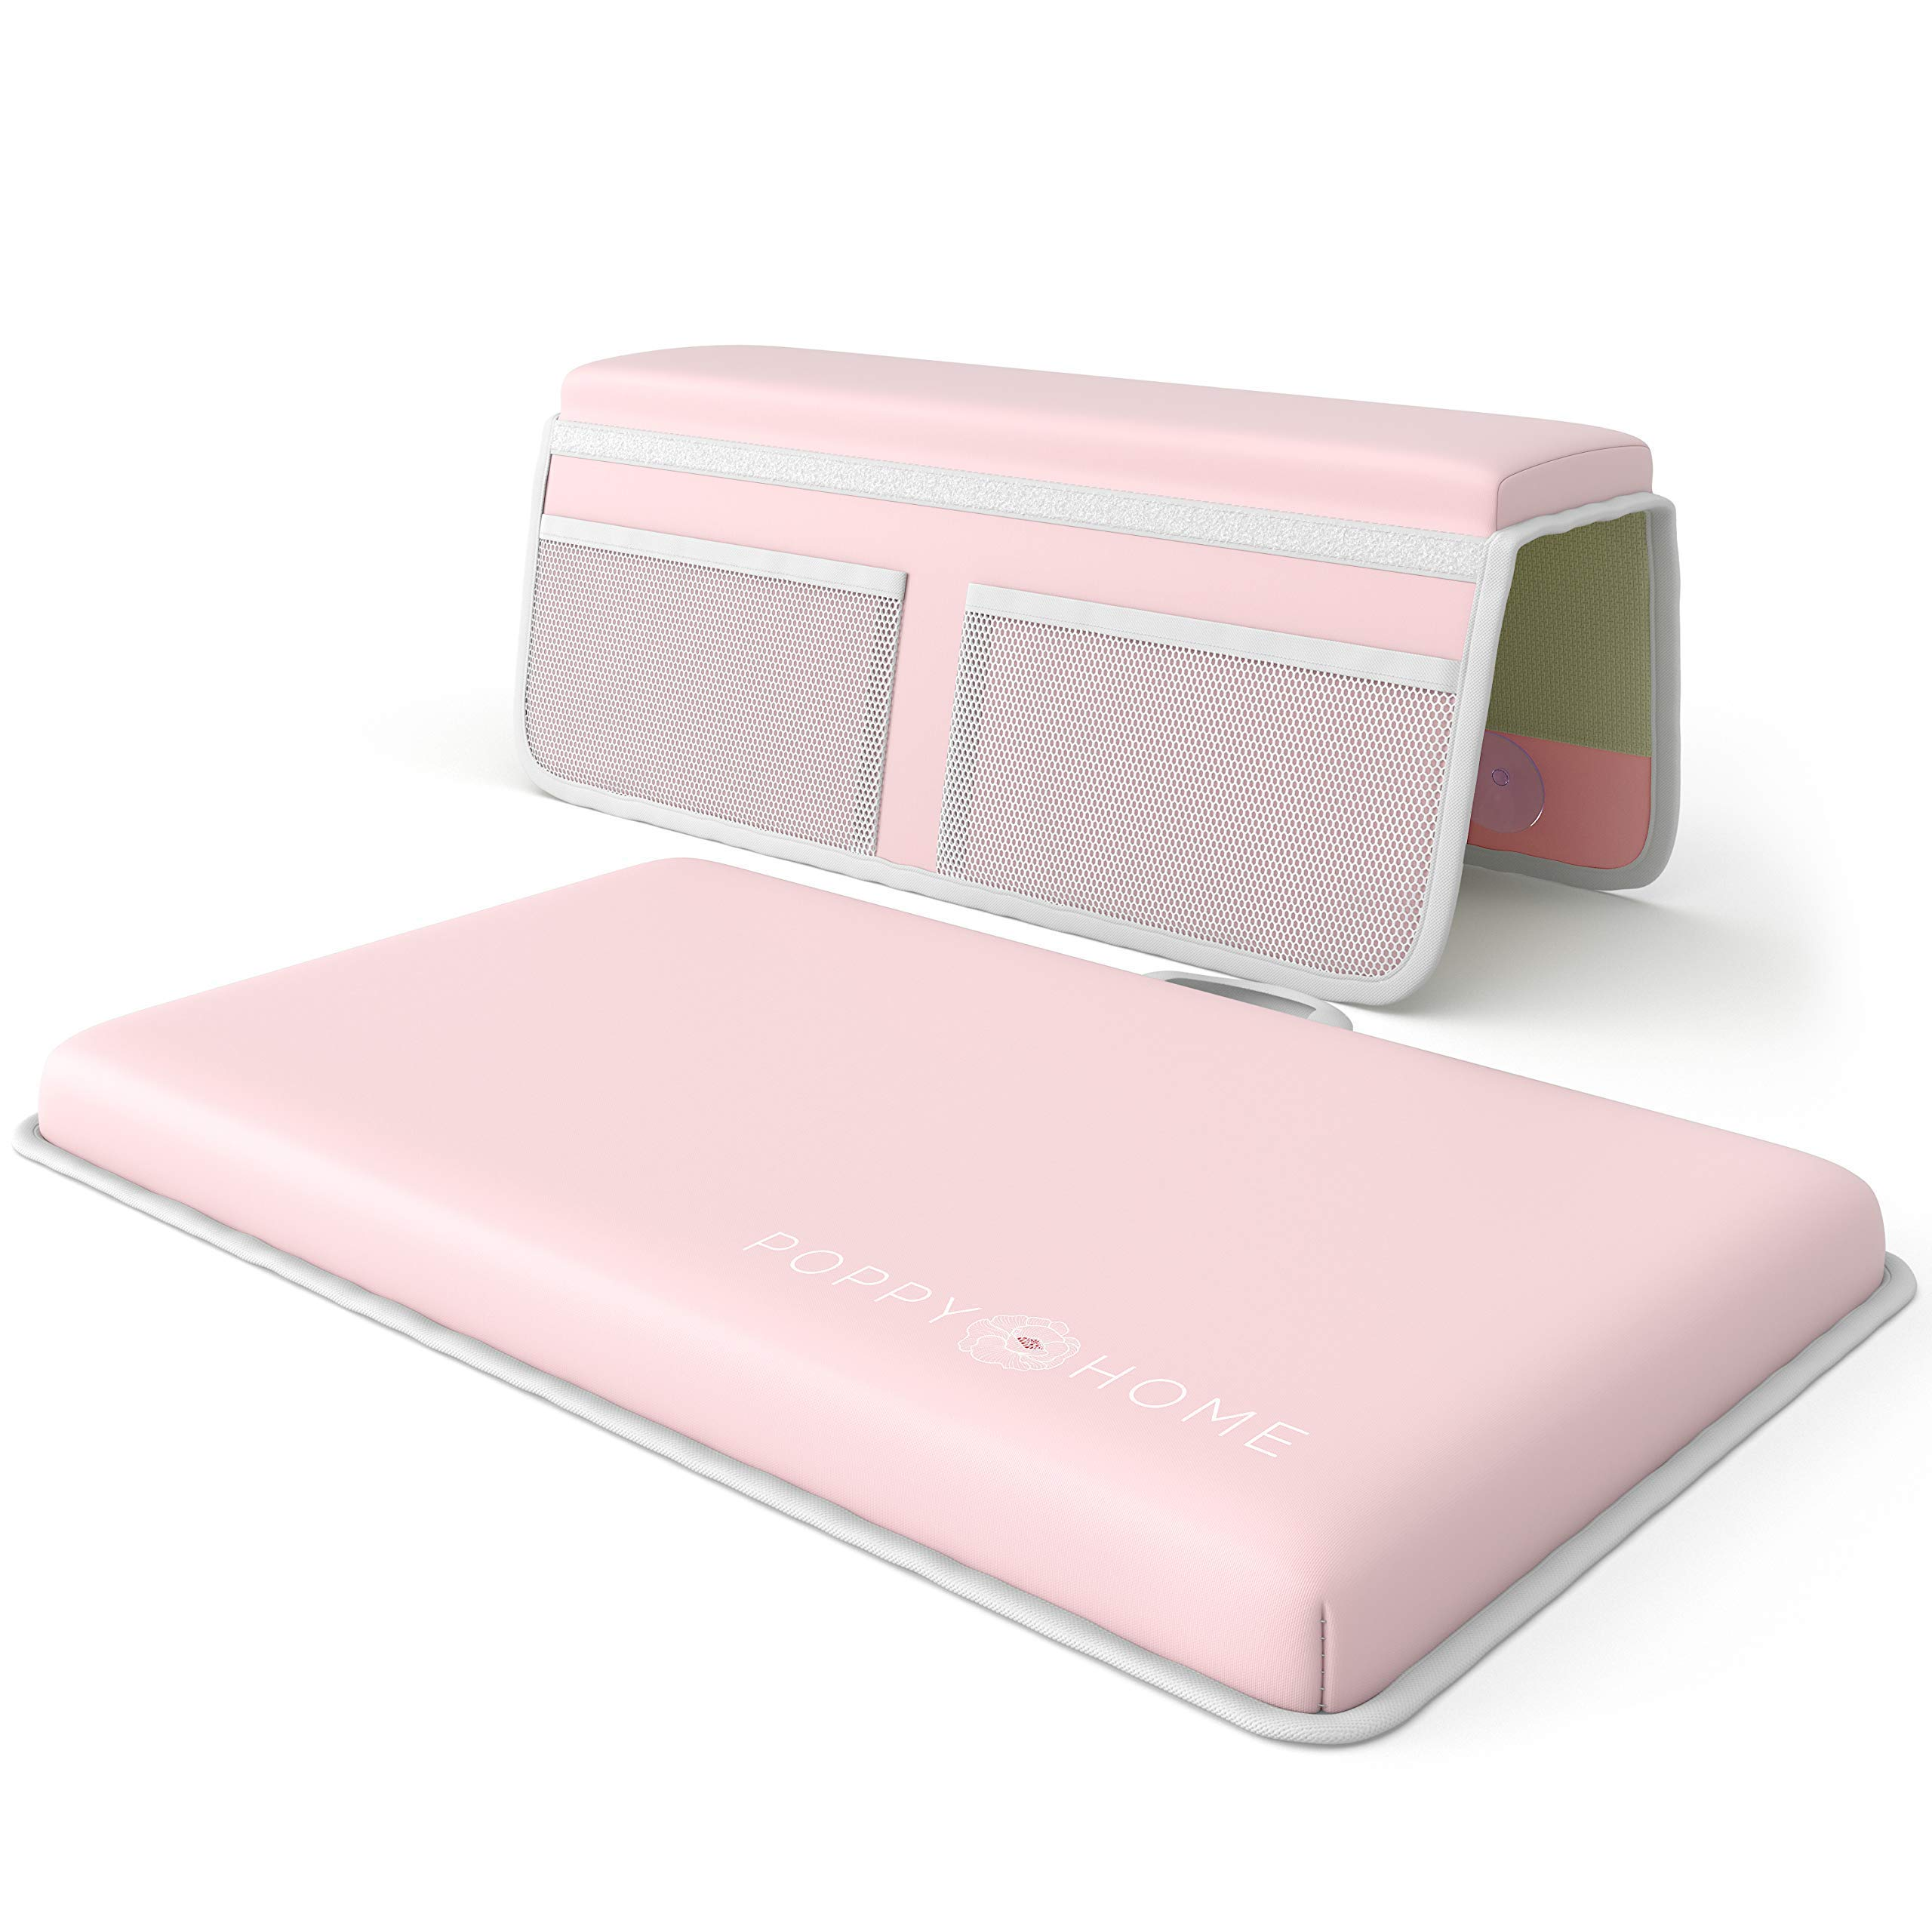 POPPY HOME Premium Bath Kneeler with Elbow Rest Pad Set: Padded Bathing Knee Cushion Mat, Mesh Pockets for Infant or Baby Bathtub Accessories, Pain Free Bathtime Knee Saver Mats. Shower Gift. Pink by Poppy Home